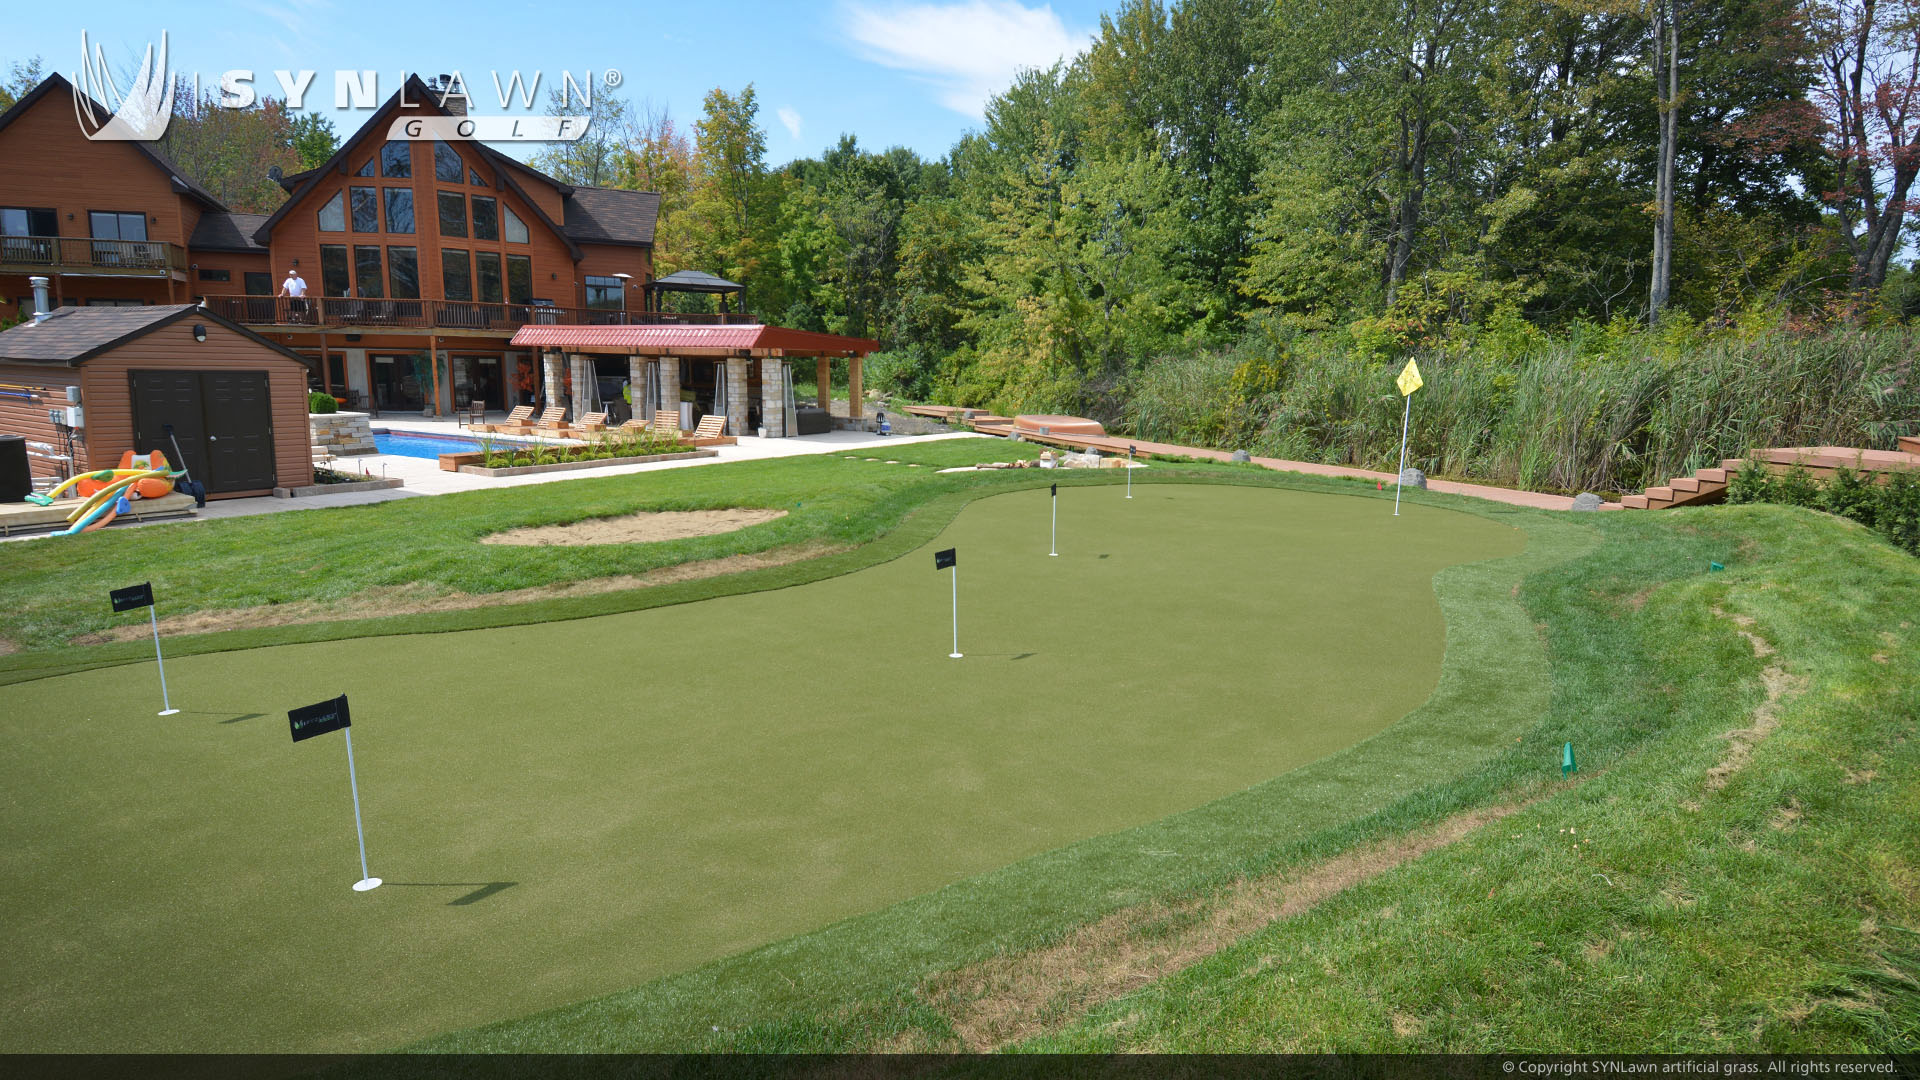 residential putting green in backyard Indiana